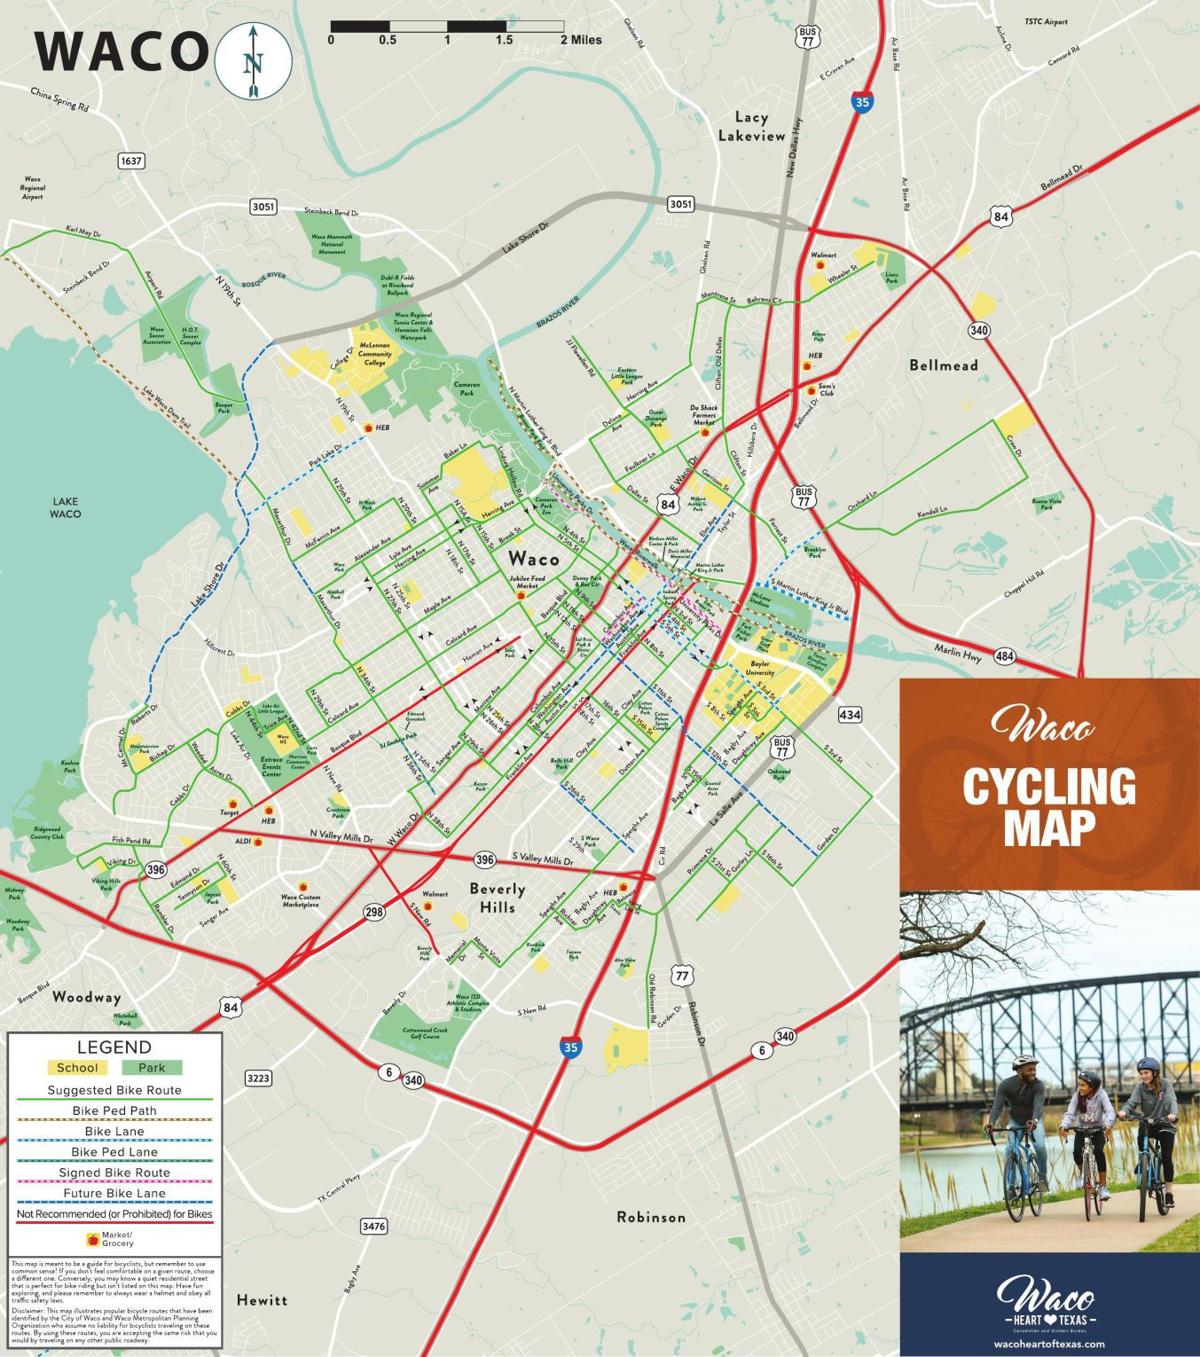 PDF: Waco cycling map